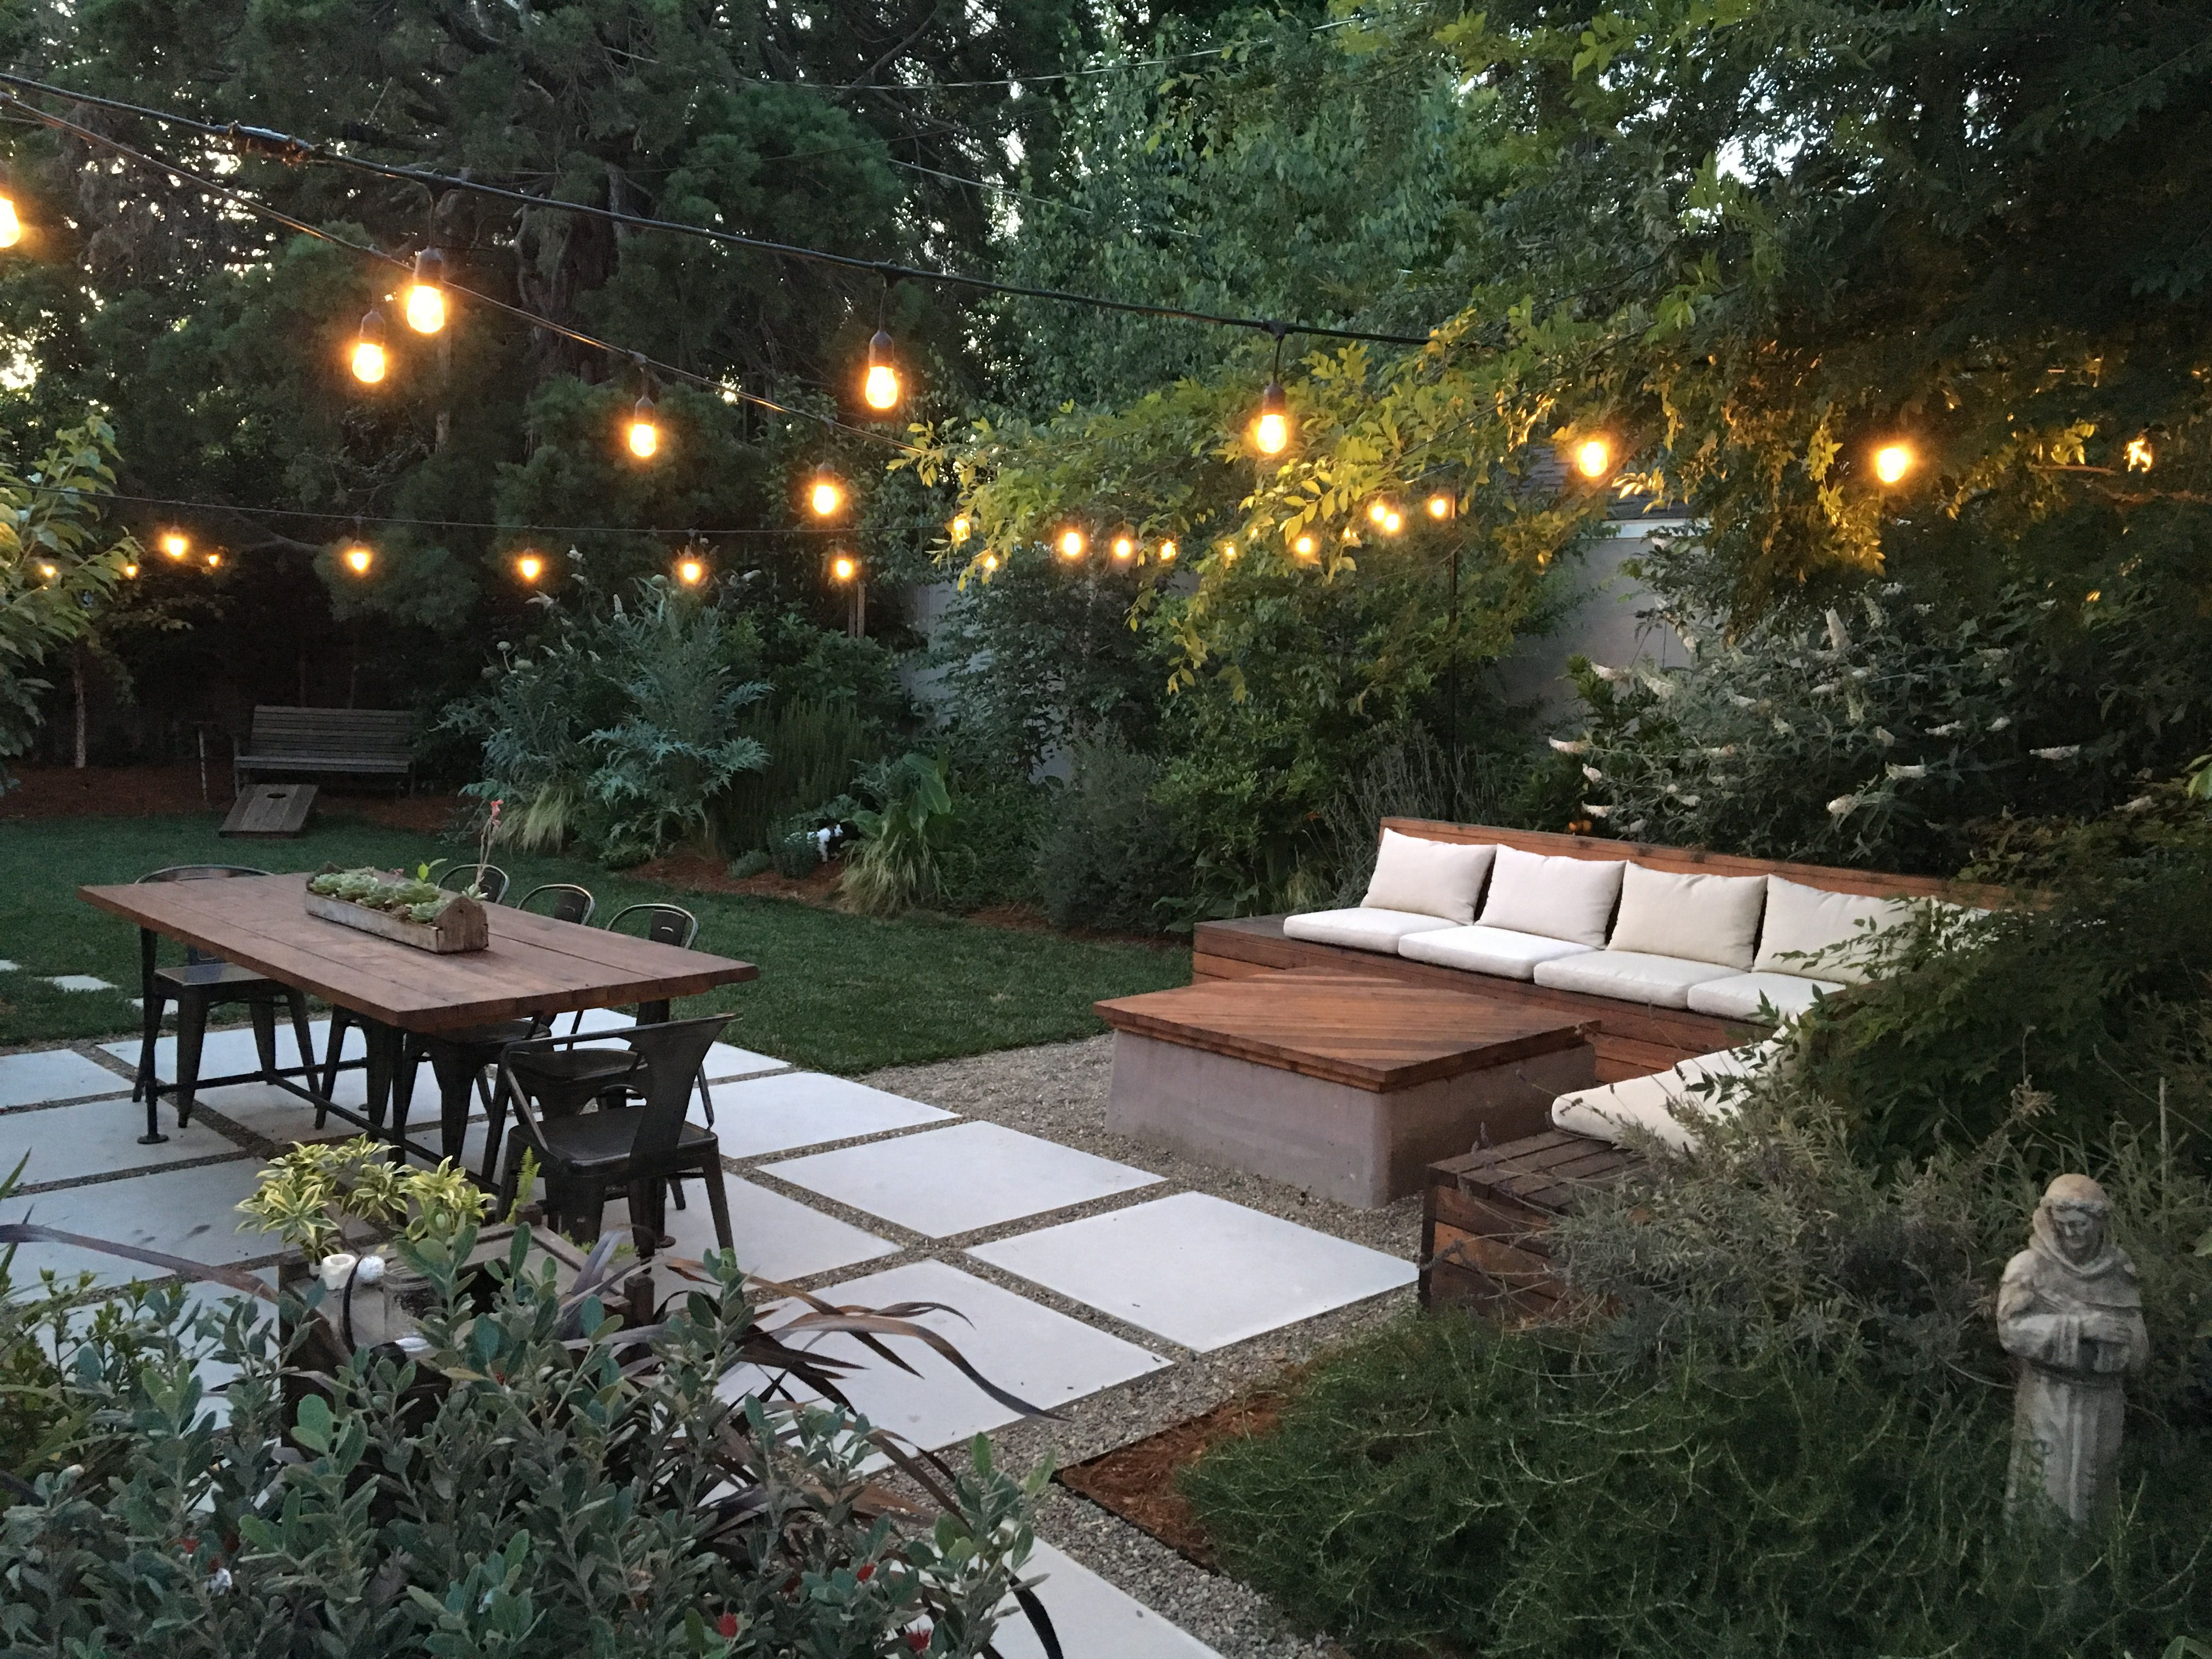 Our Backyard Patio Design And Outdoor Sectional Seating Area With Cafe Lights Incorporates An Open F Backyard Seating Area Backyard Dining Backyard Renovations